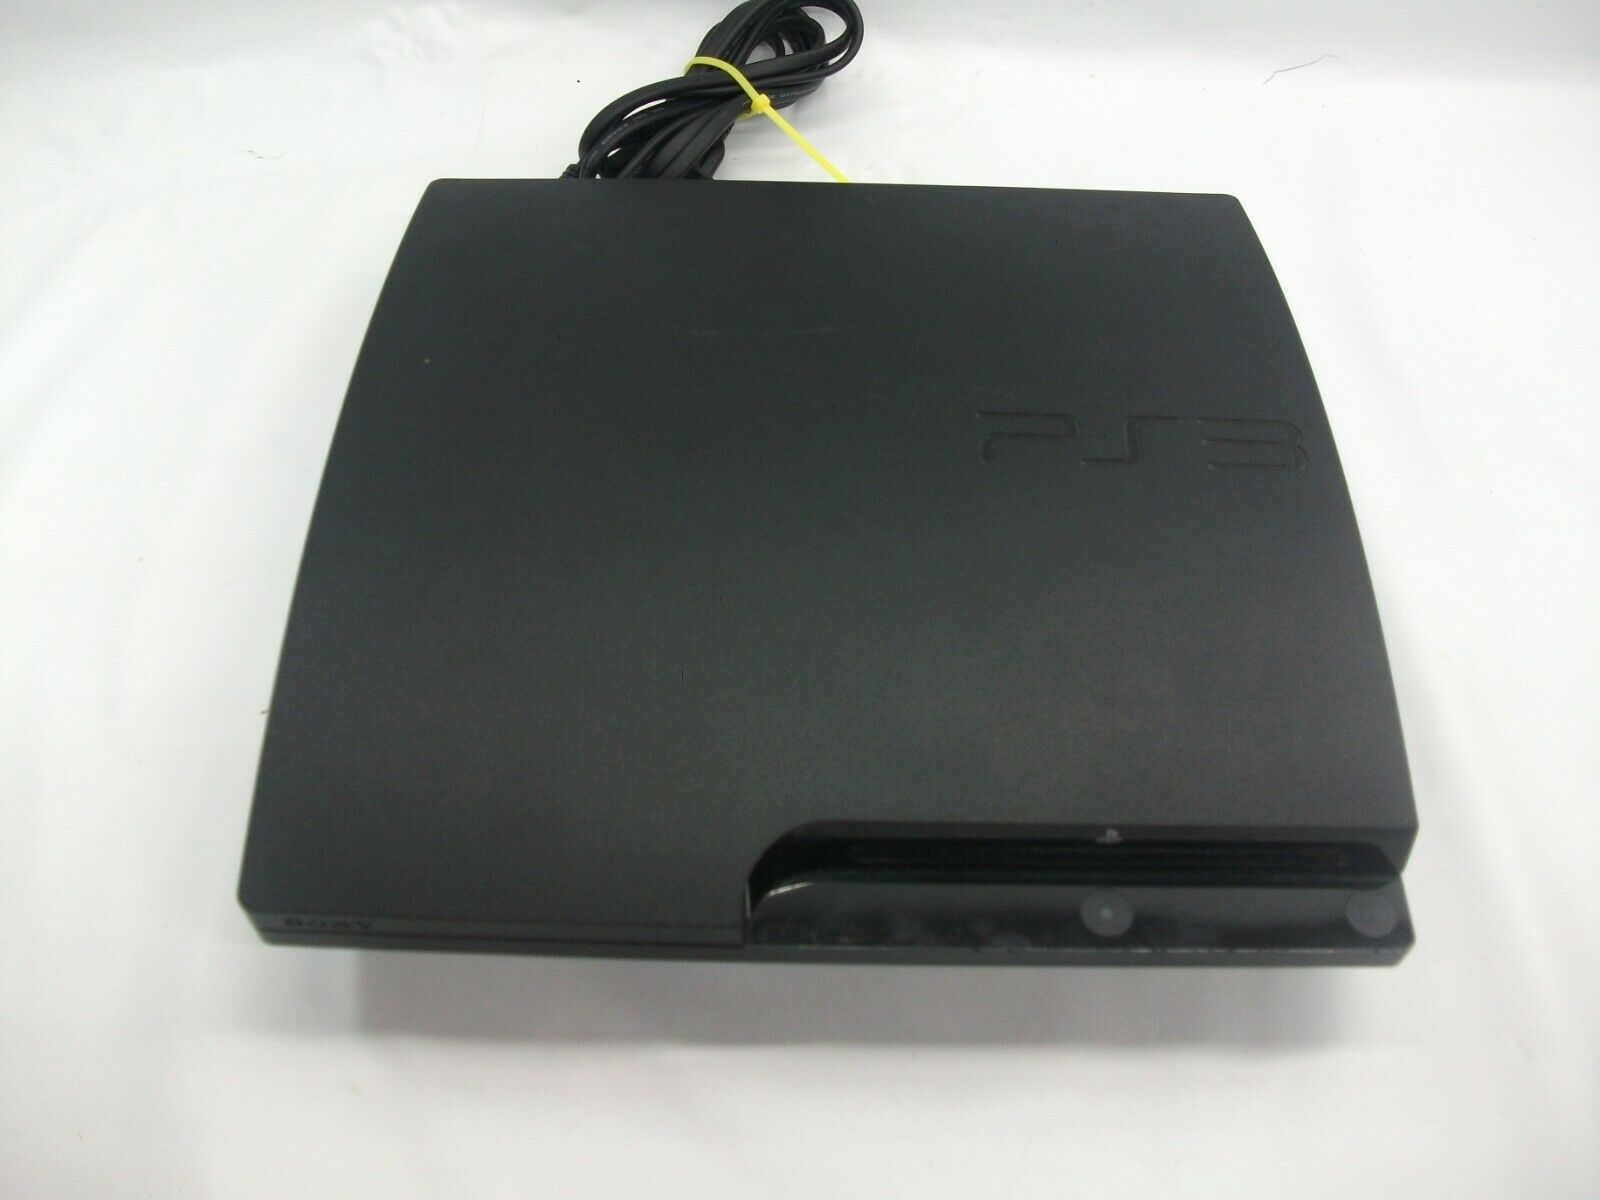 Playstation 3 PS3 CECH-3001A Console Only W/ Power Cable Tested Works